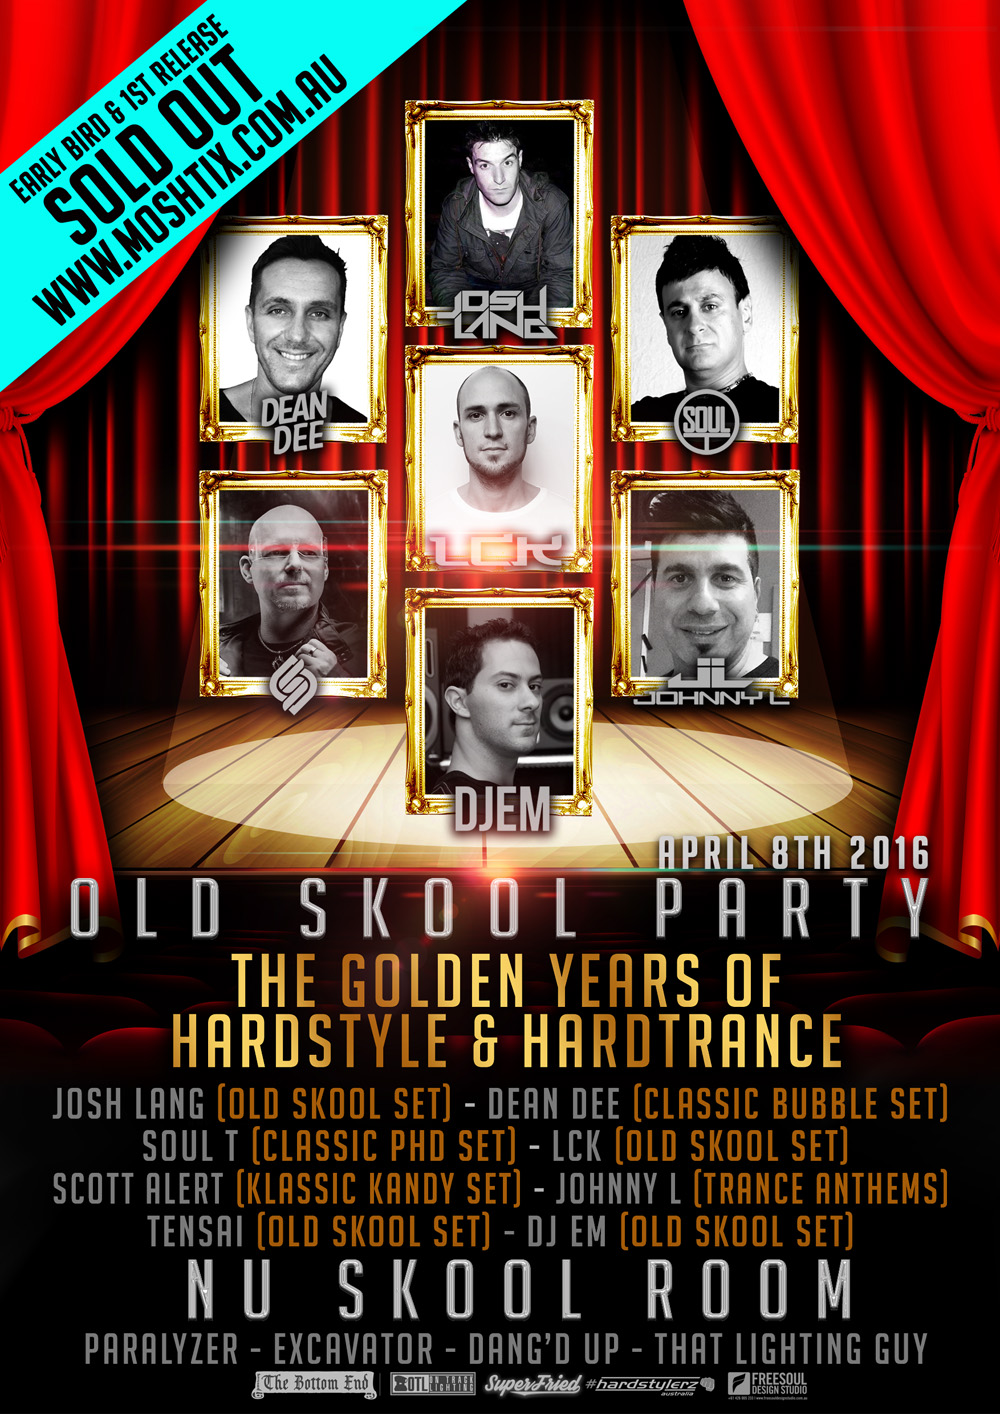 OLD SKOOL PARTY_POSTER_TEASER_1ST_RELEASE_SOLD_OUT